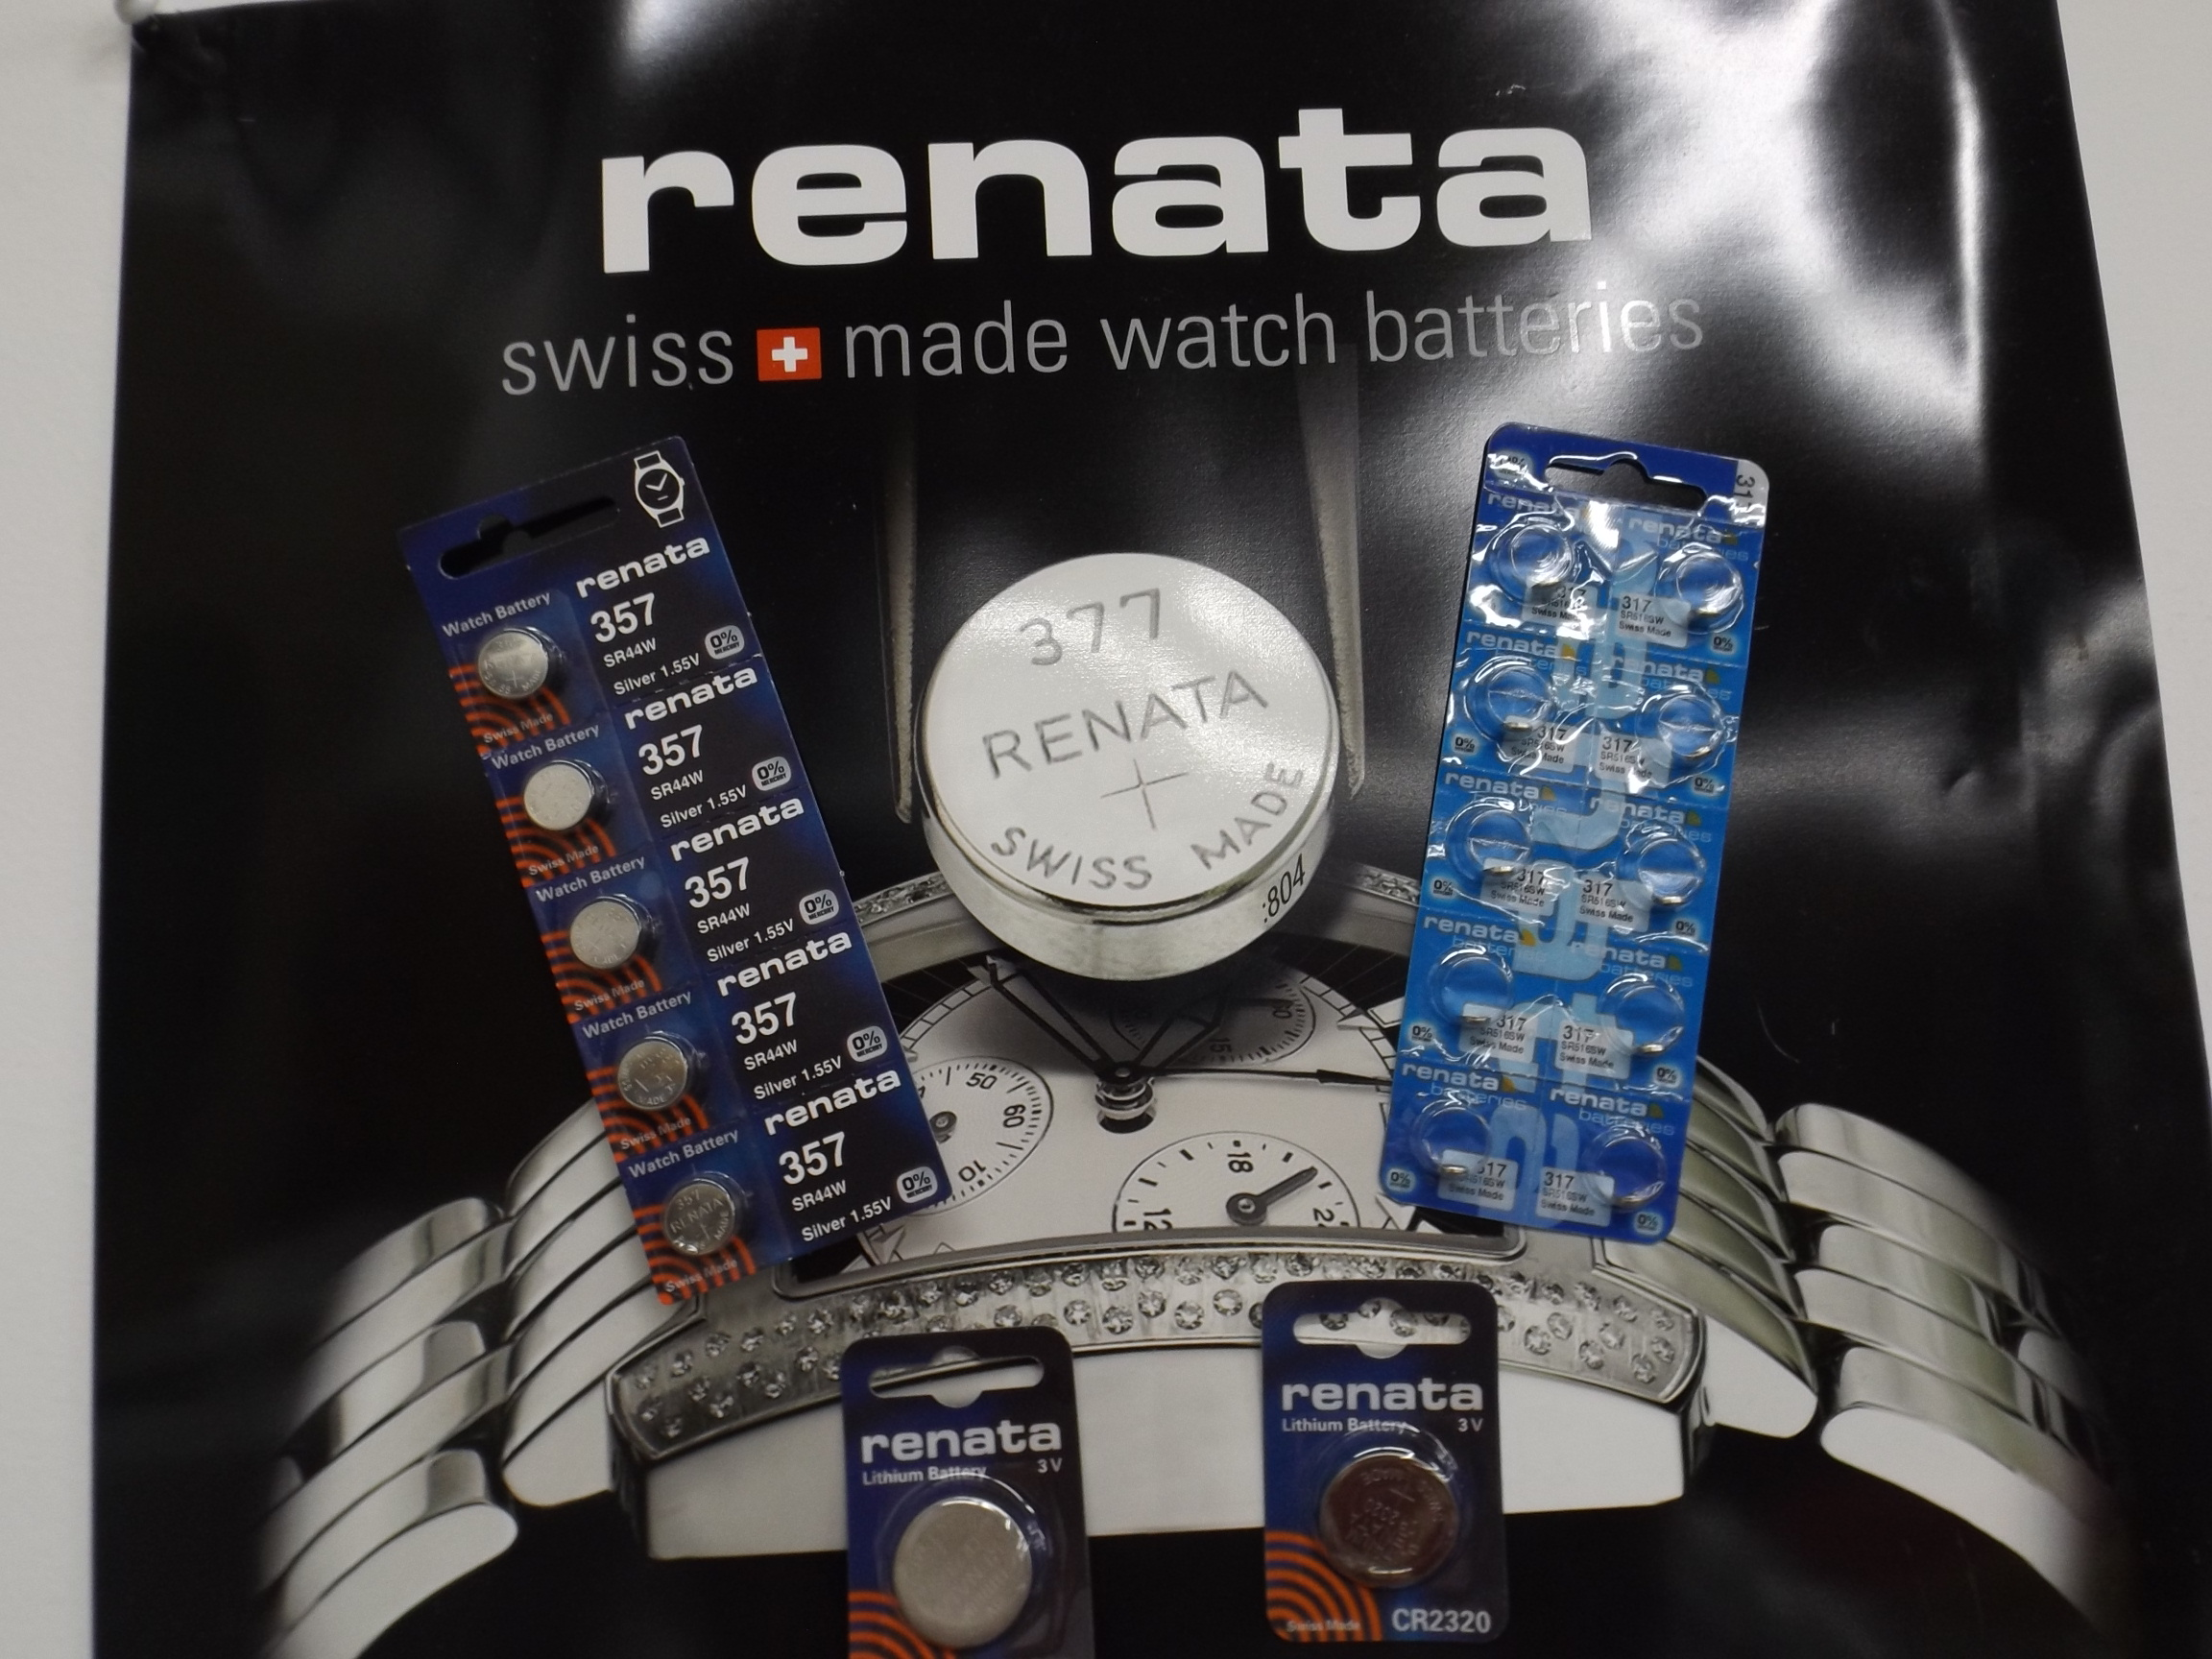 RENCR2032 Renata Watch Batteries-Lithium, sold by 5's